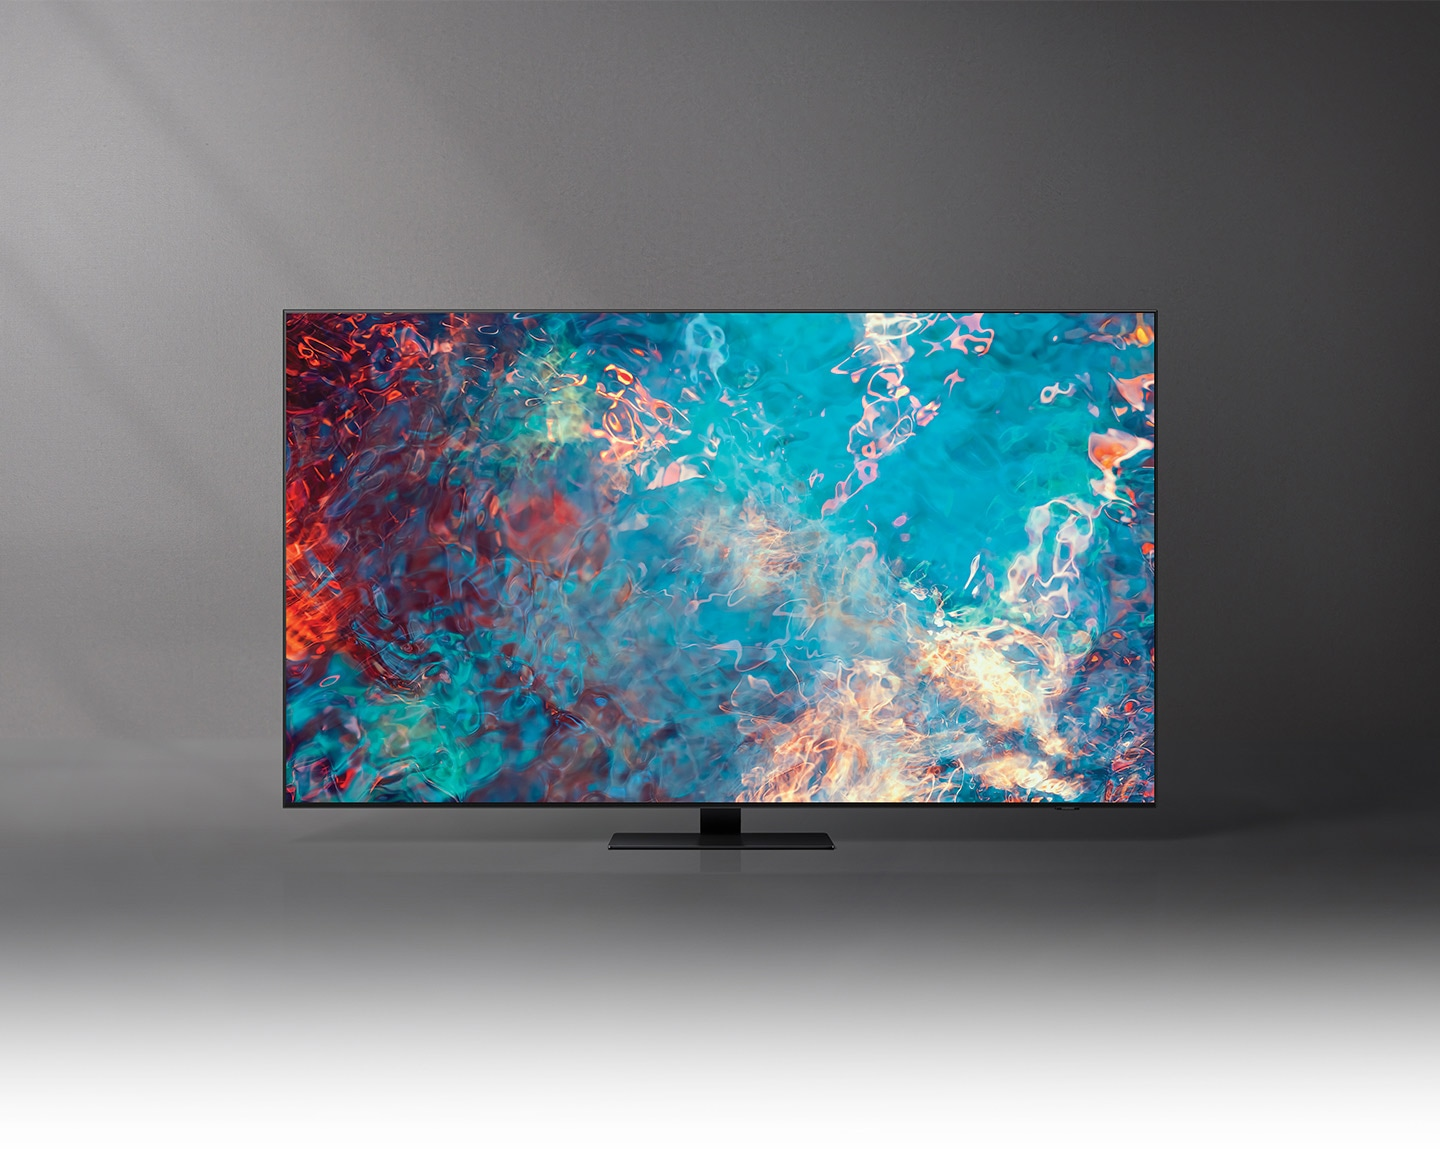 The next generation of display technology